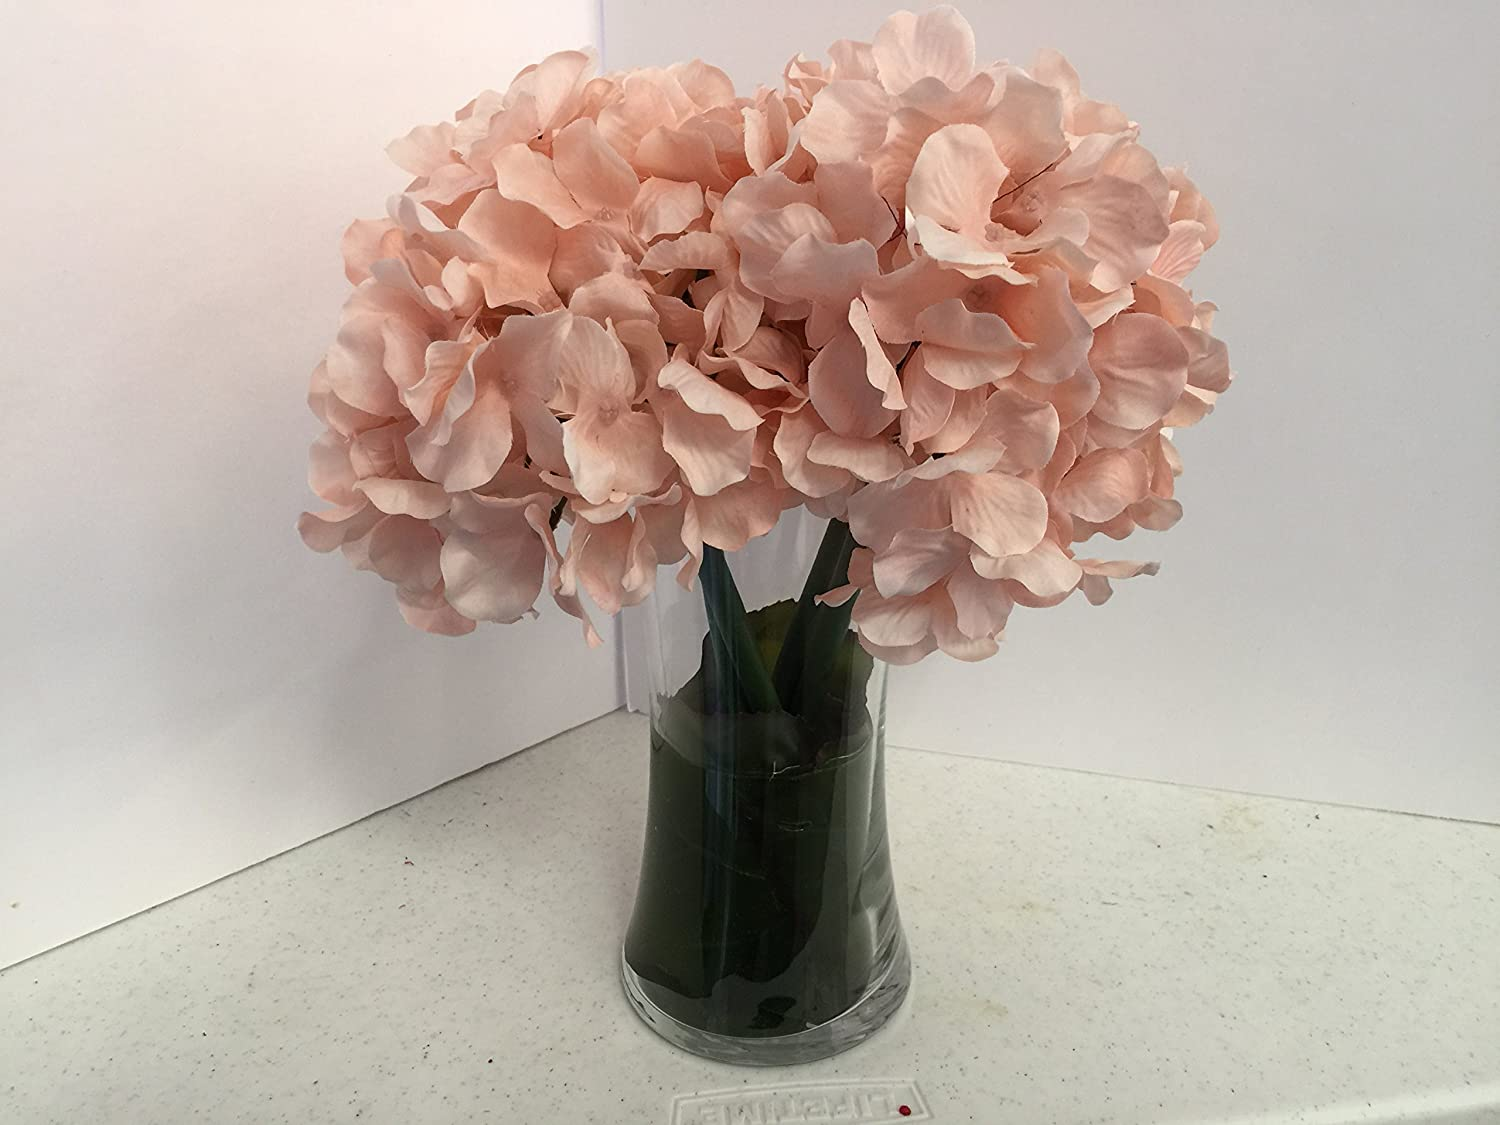 Cream Pink Hydrangeas Max 82% OFF Sales of SALE items from new works in a Medium Tall Glass Vase